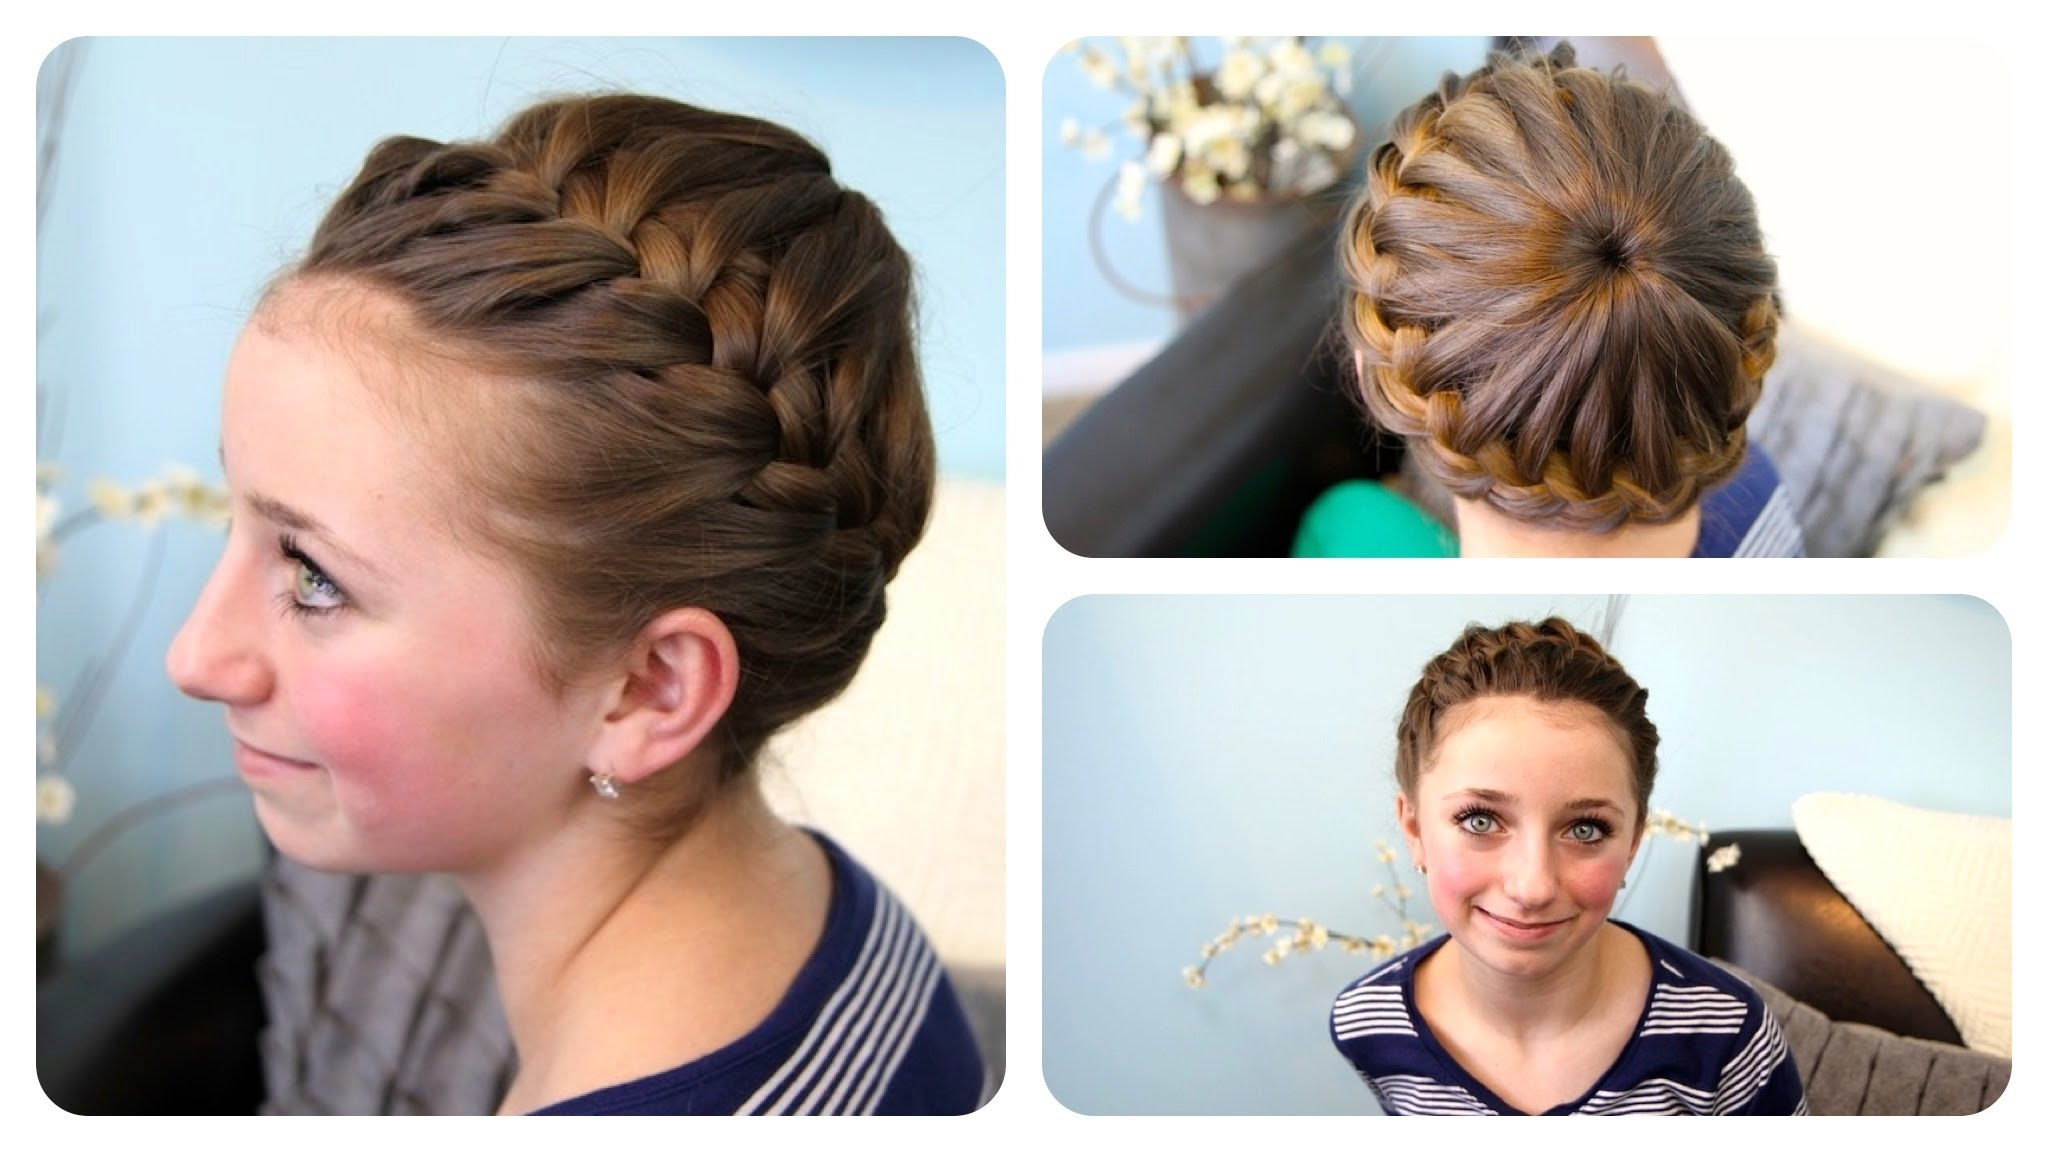 Starburst Crown Braid | Updo Hairstyles | Cute Girls Hairstyles Intended For Cute Girls Updo Hairstyles (View 8 of 15)